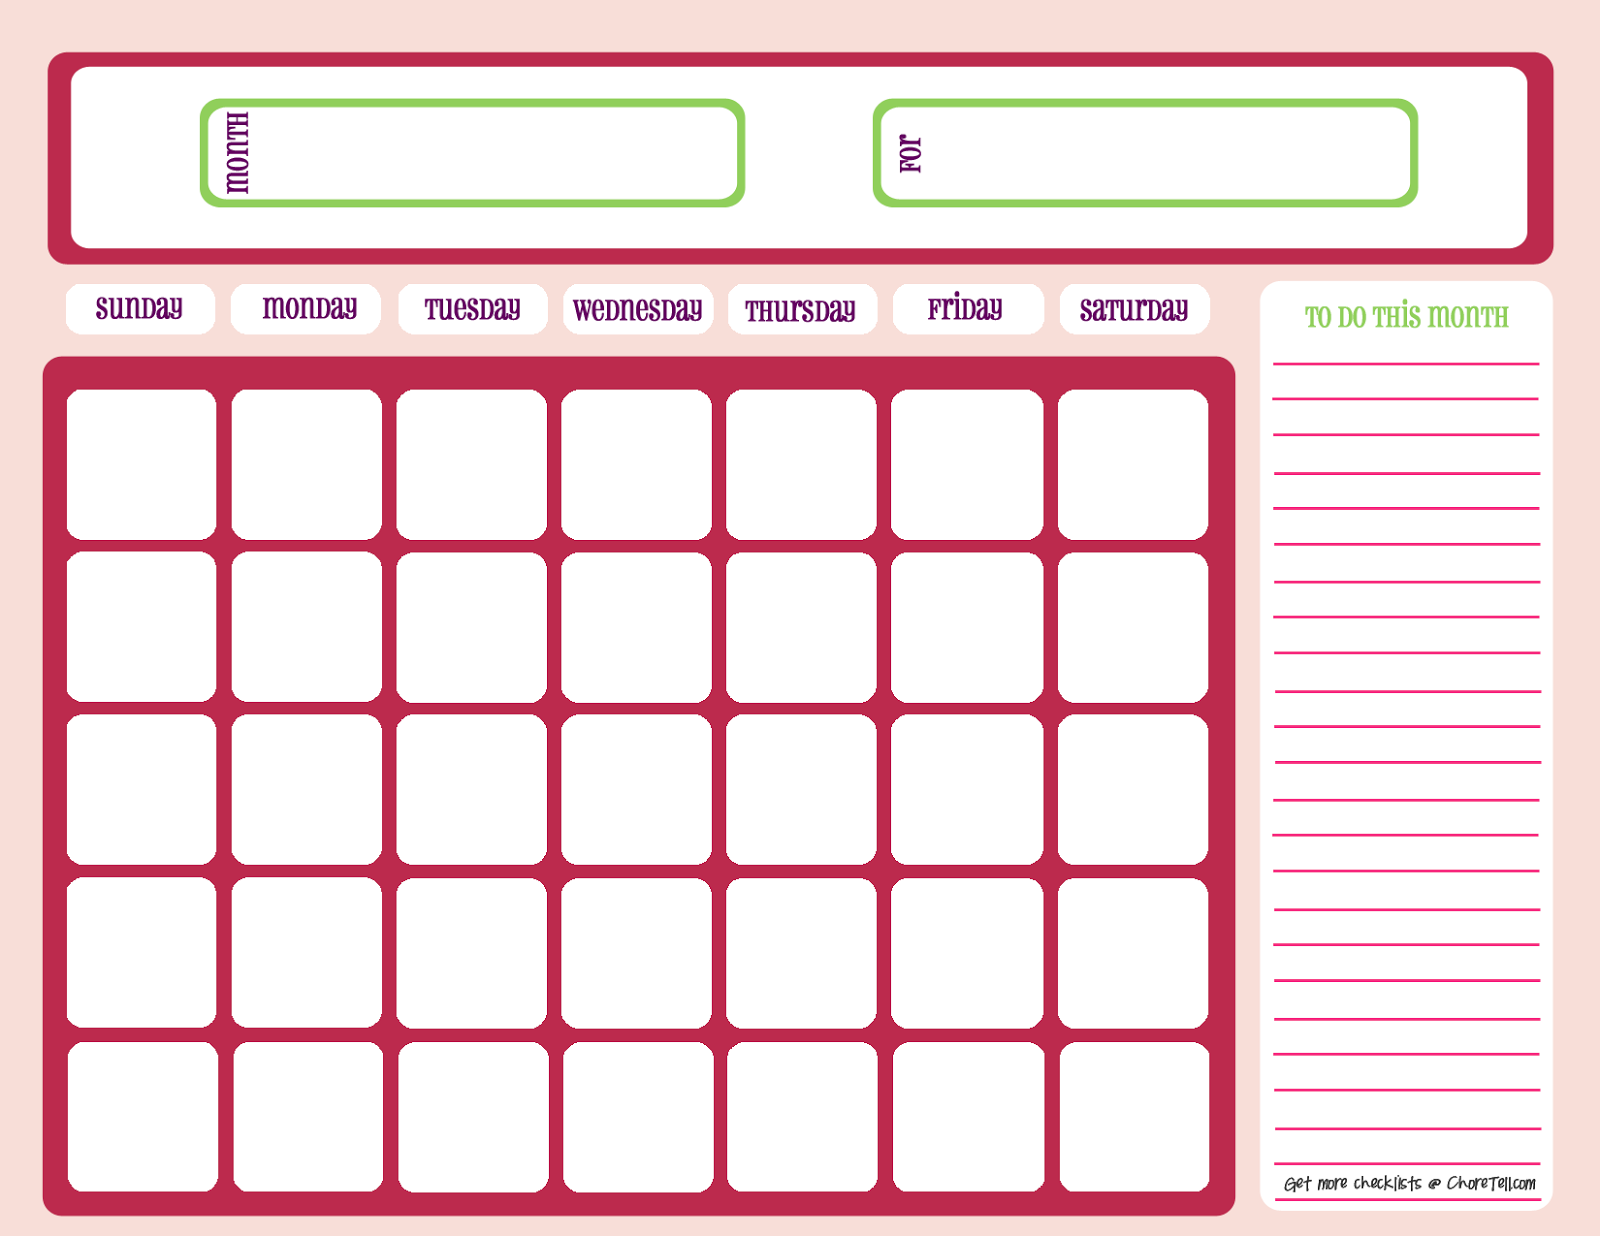 A4 Printable Yearly Calendar 2019 | Task Management ...